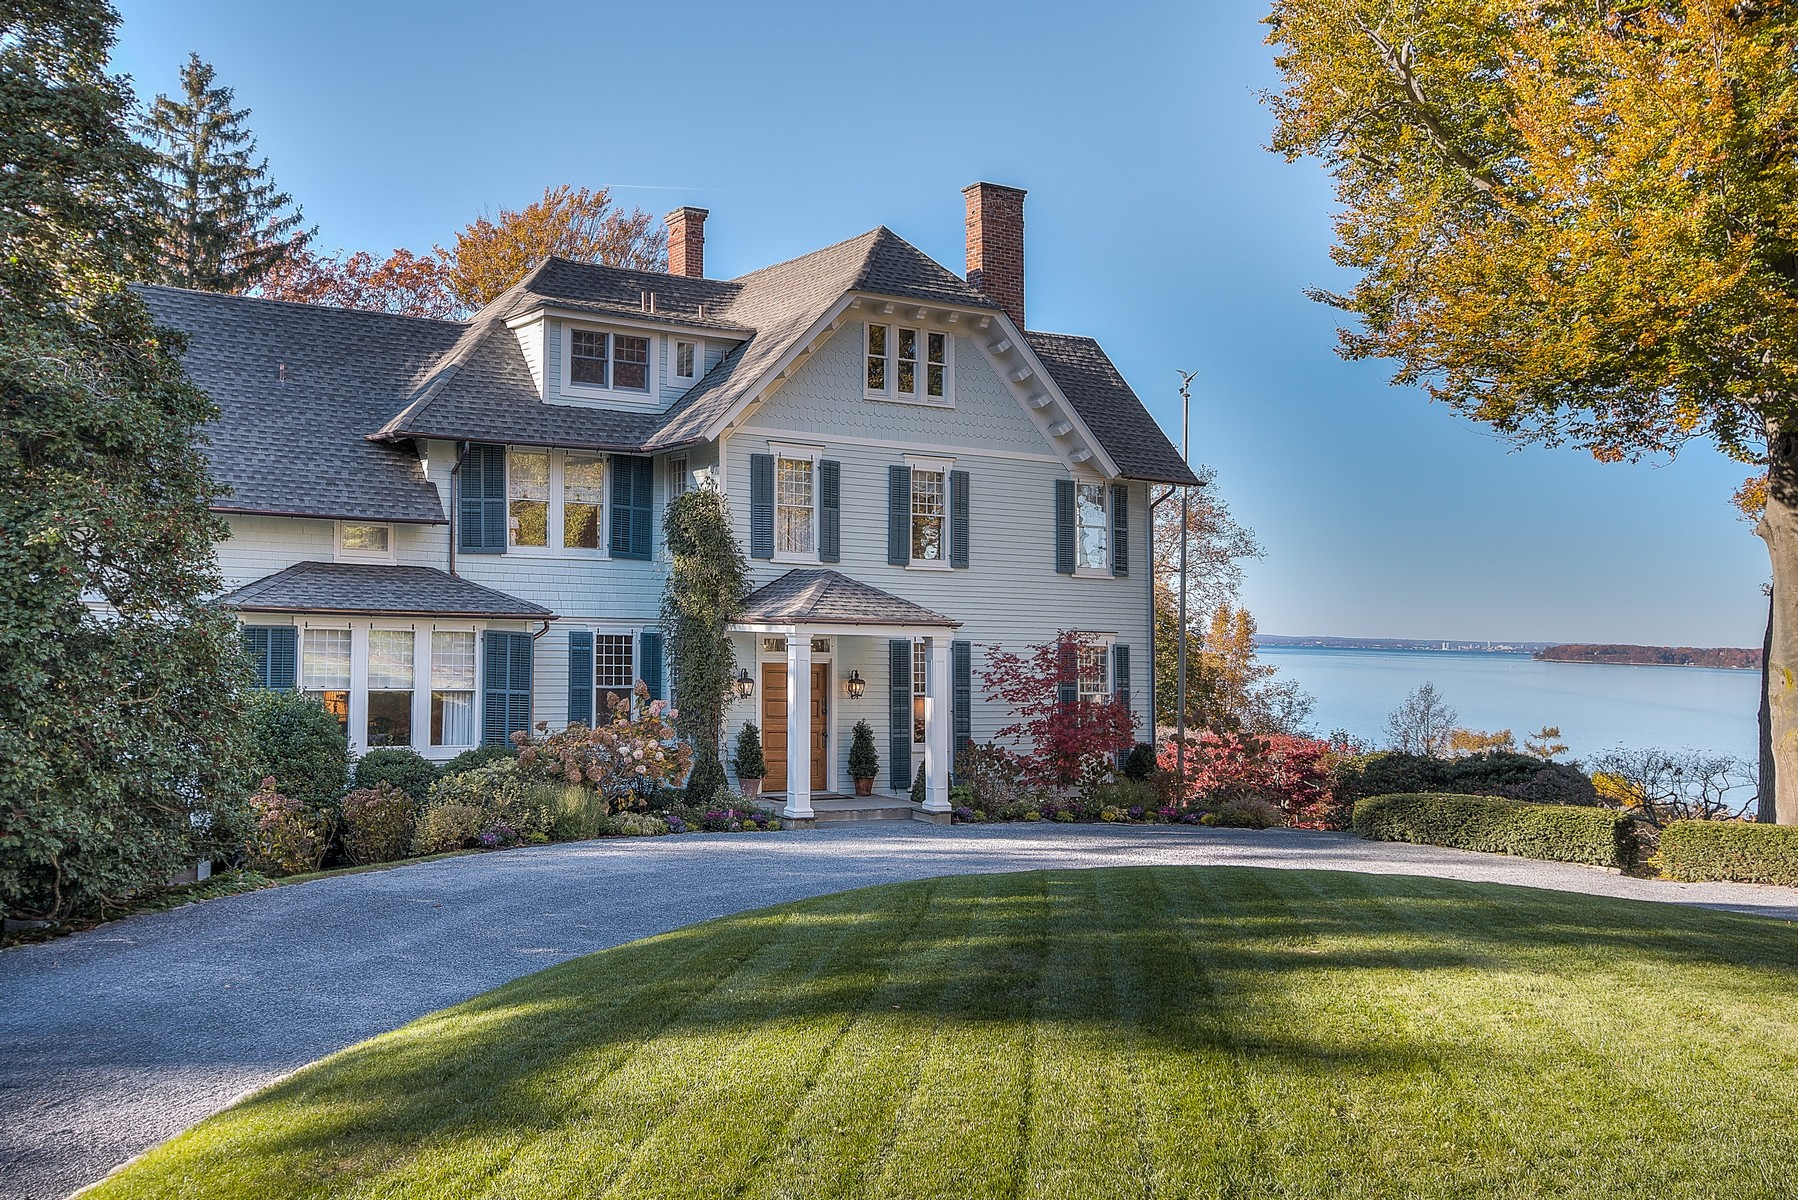 Single Family Home for Sale at Colonial 1438 Ridge Rd Laurel Hollow, New York, 11791 United States